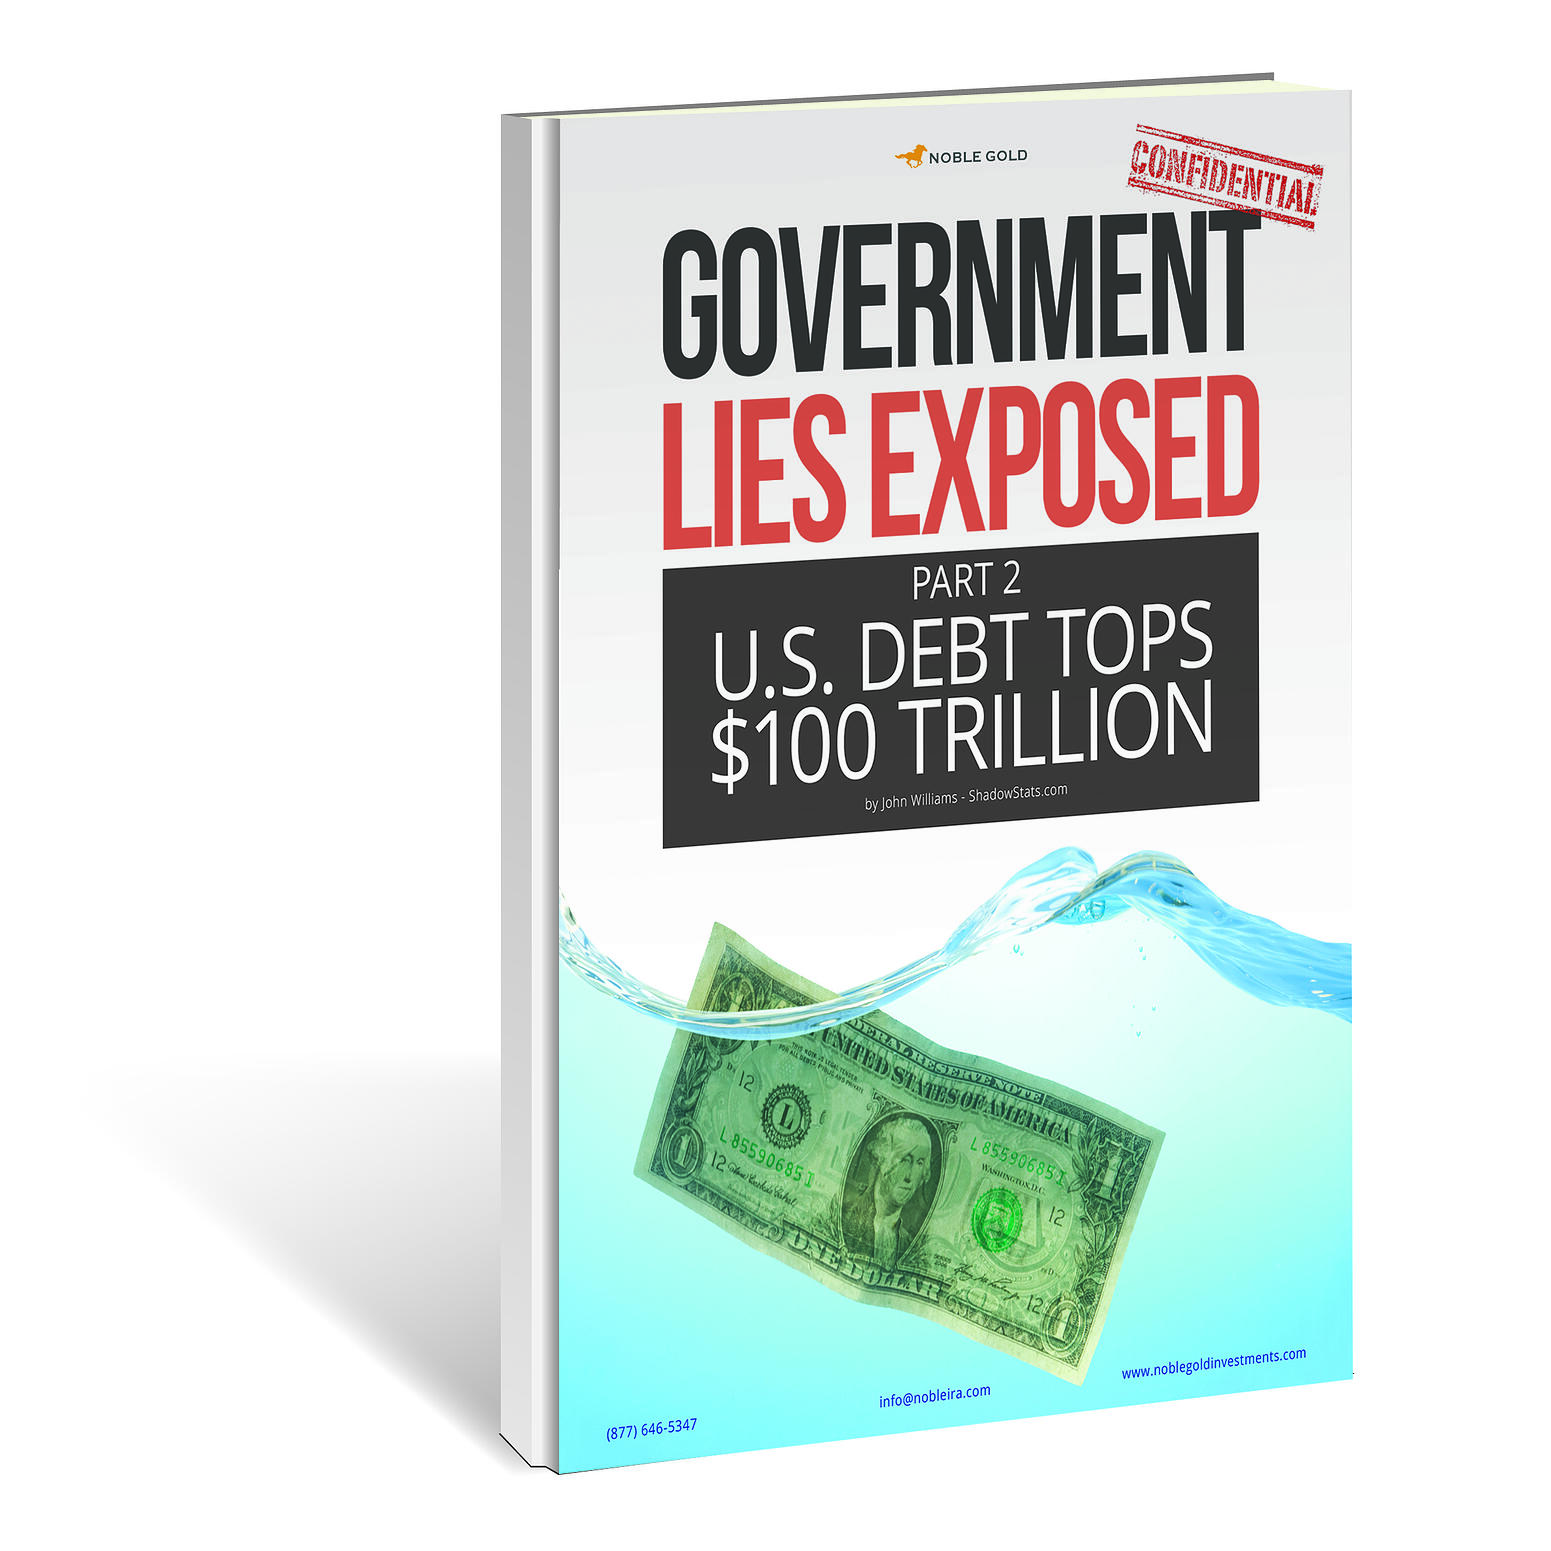 Gov-lies-exposed-part11.jpg